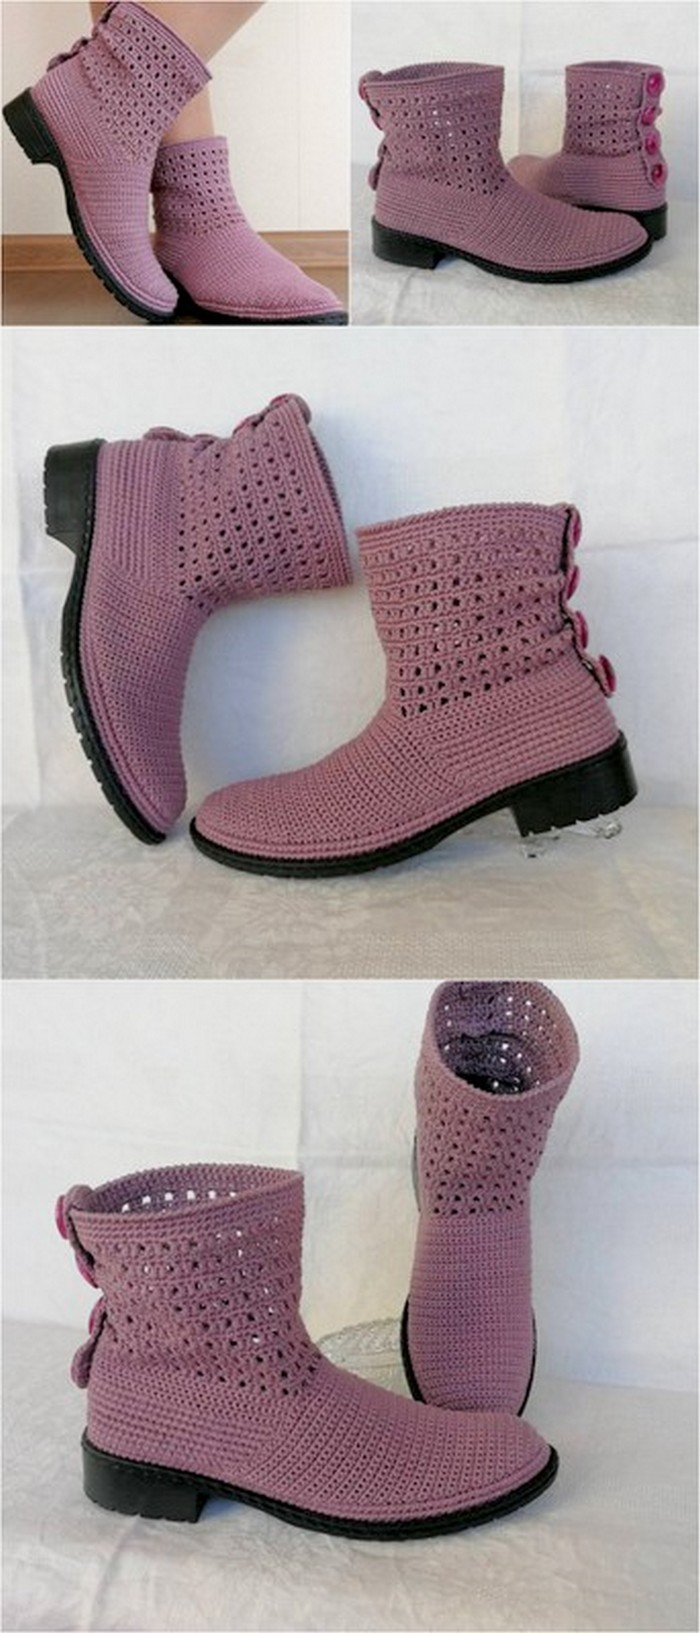 fabulous crochet shoes design